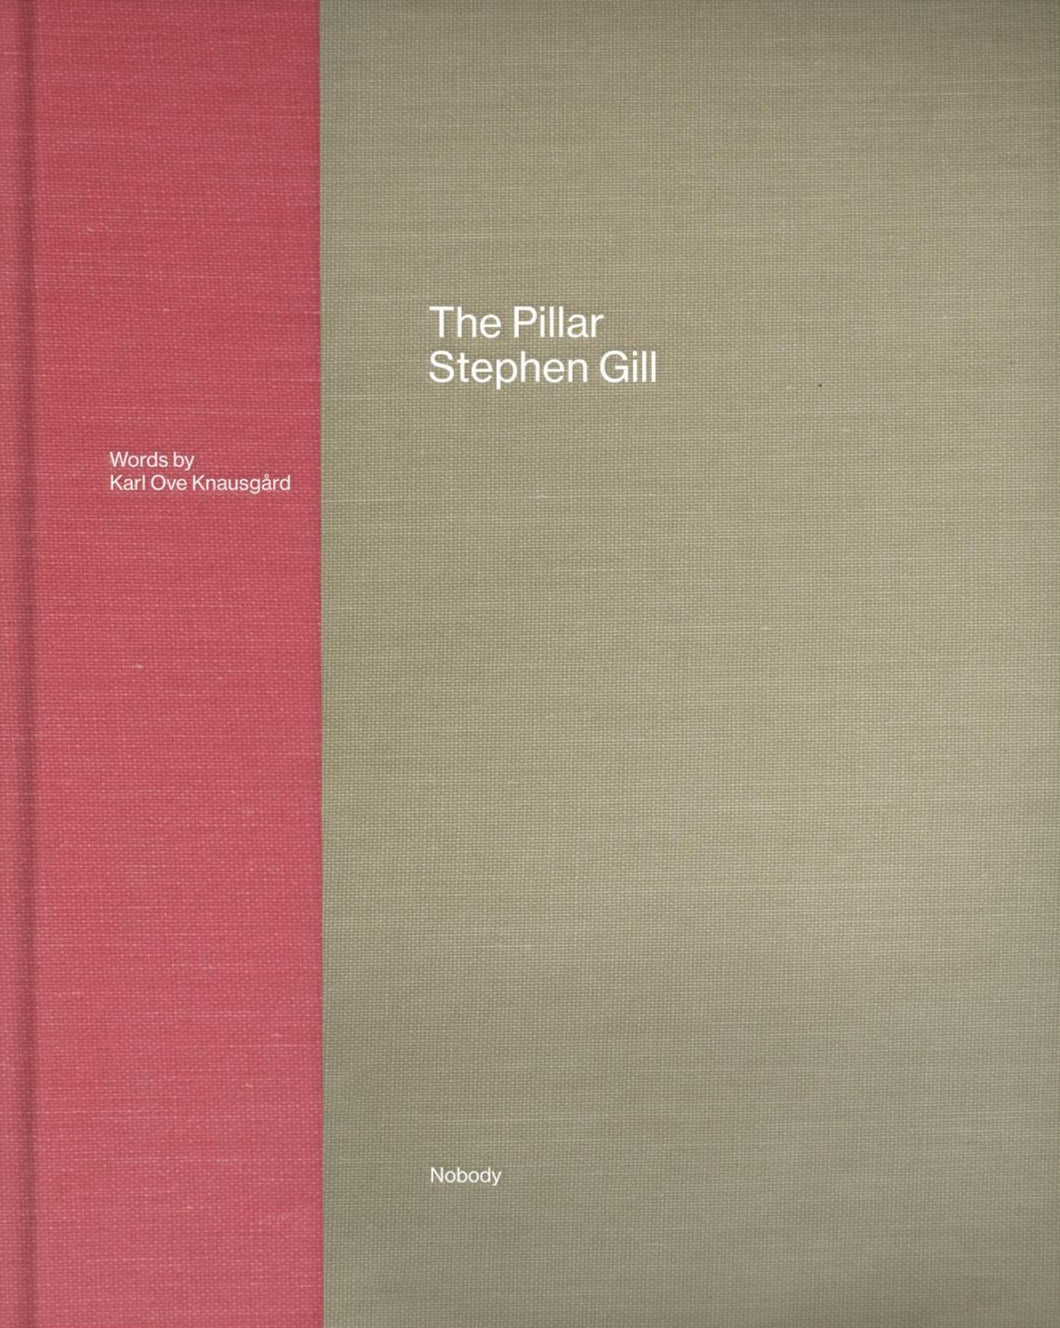 Stephen Gill - The Pillar (2nd Ed. Signed Copy)